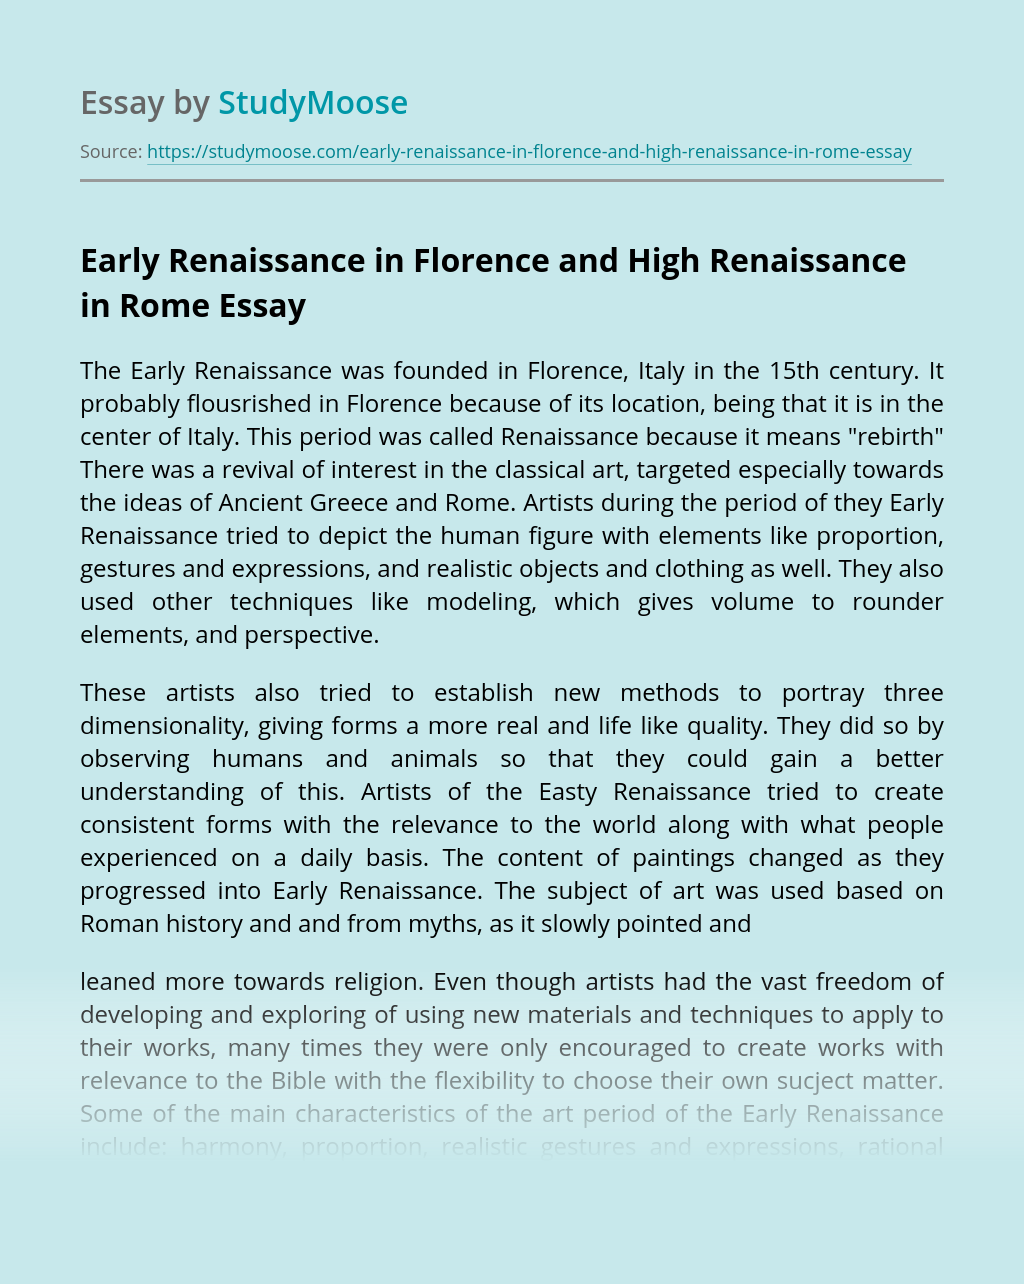 Early Renaissance in Florence and High Renaissance in Rome